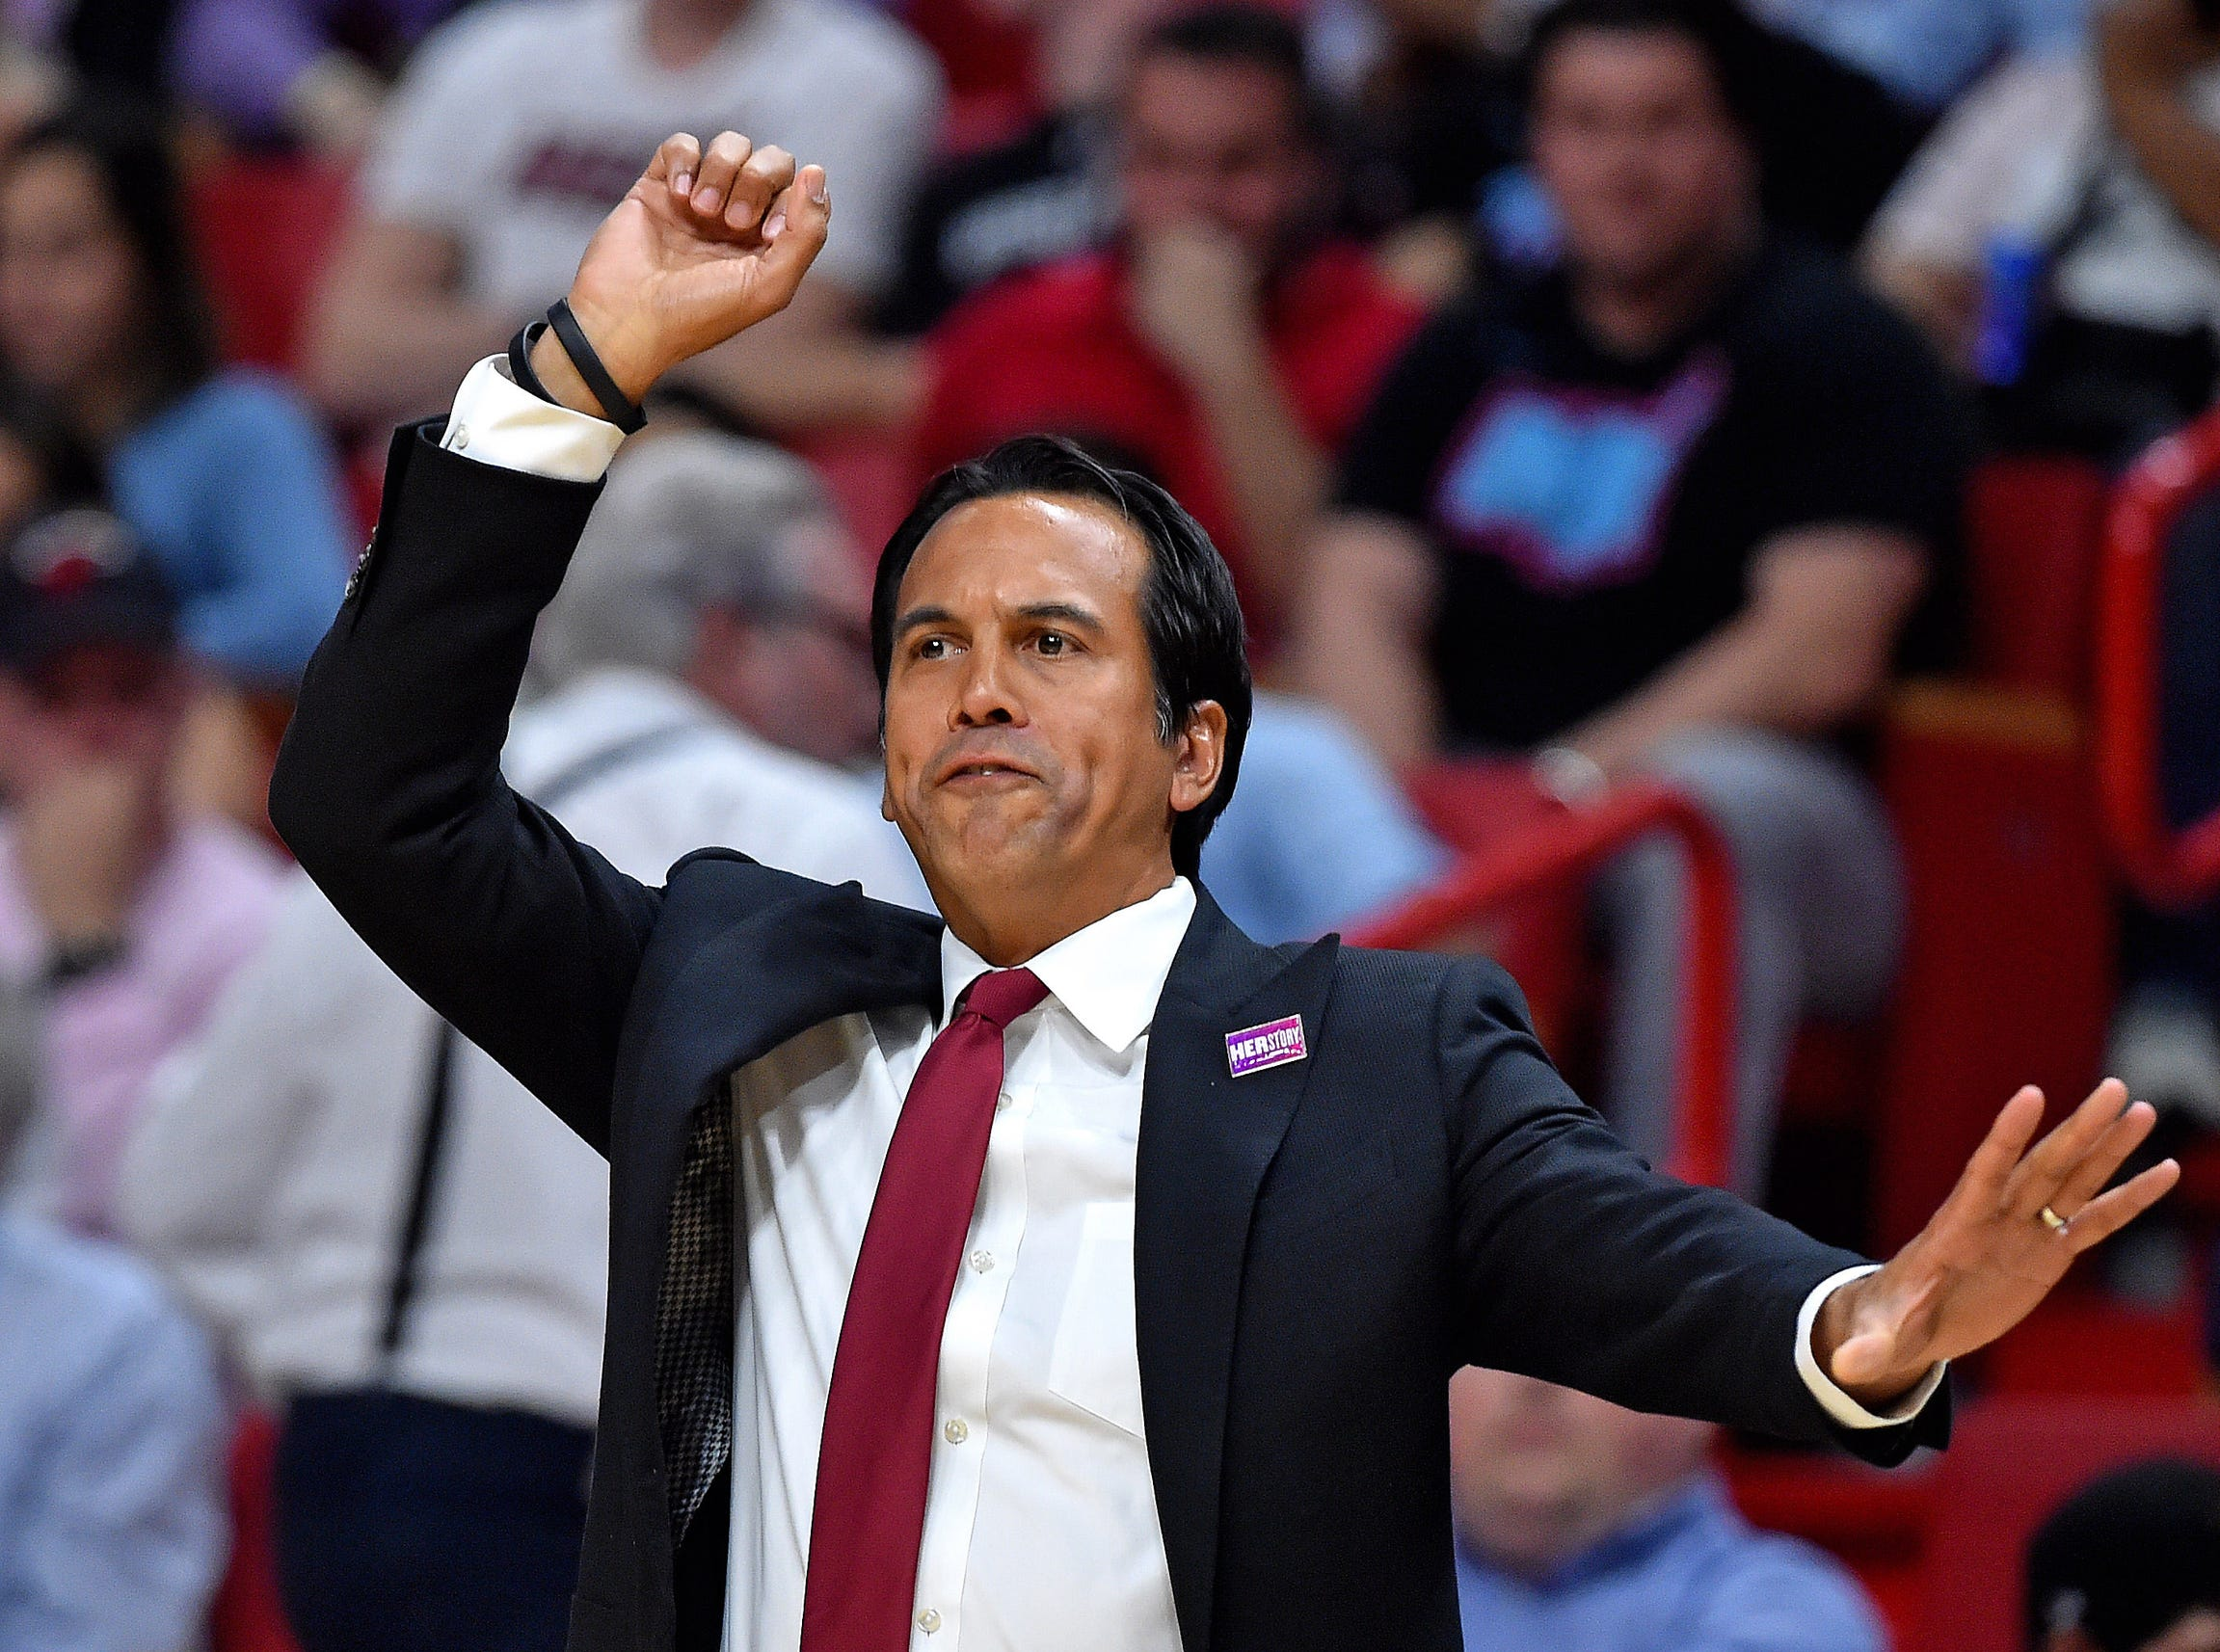 Miami Heat head coach Erik Spoelstra reacts on the sidelines against the Detroit Pistons during the first half at American Airlines Arena on March 13, 2019.